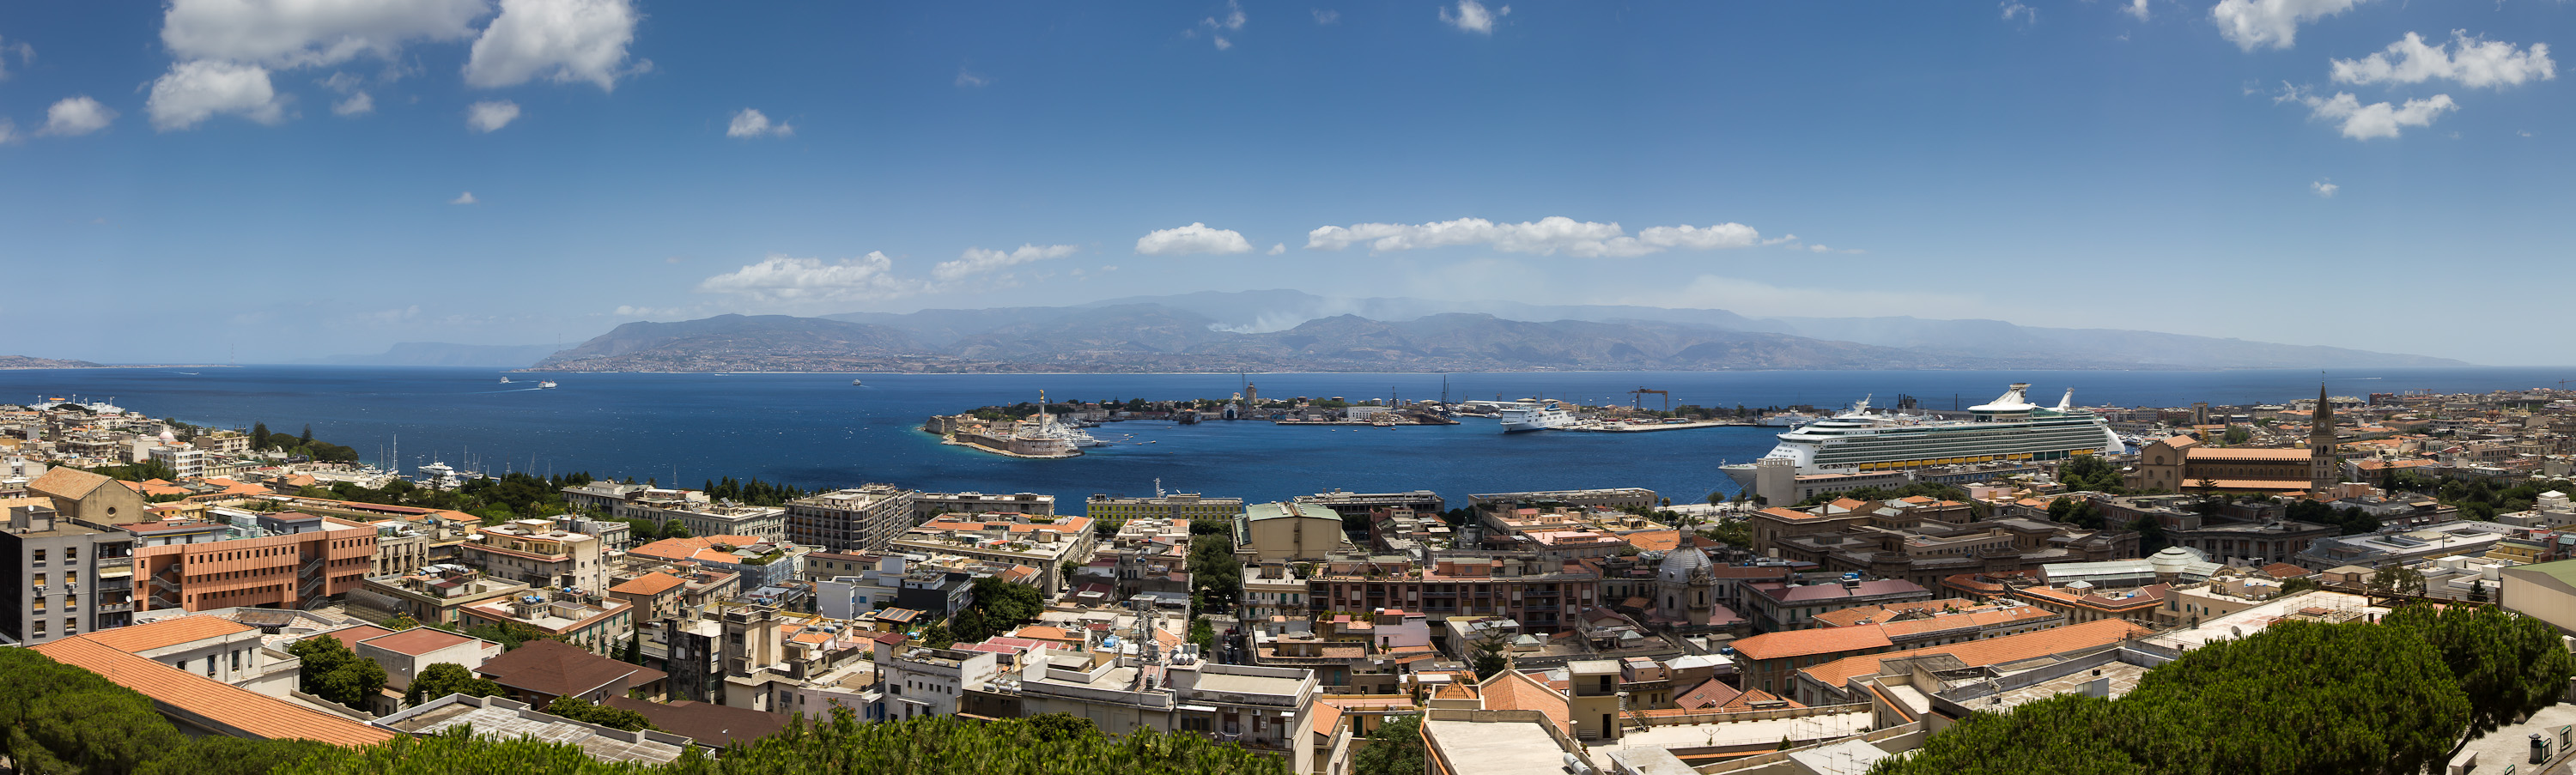 Messina Strait